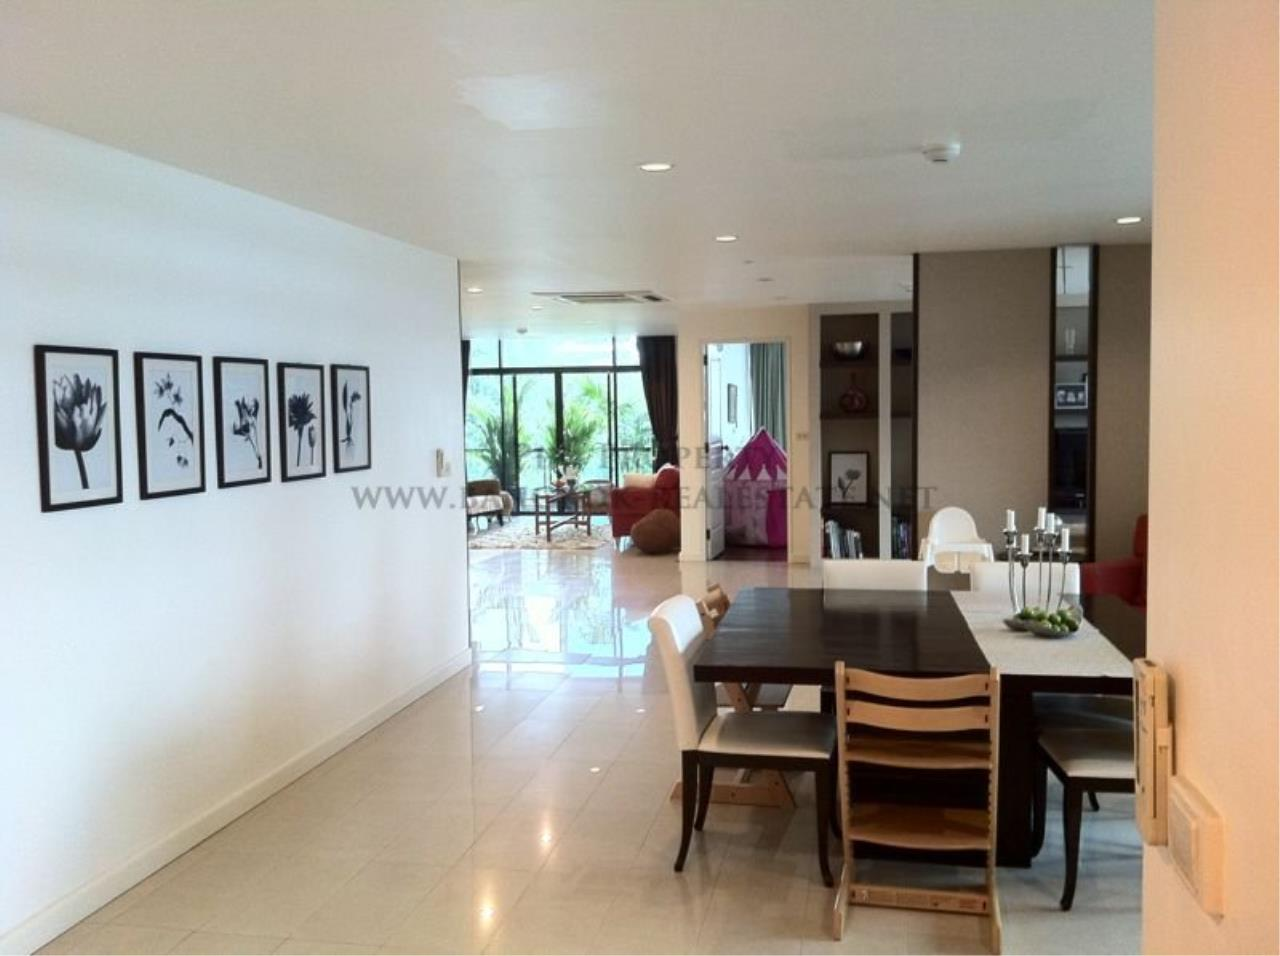 Piri Property Agency's Baan Ananda - Luxurious and Spacious 3 plus 1 BR Condo for Sale 4